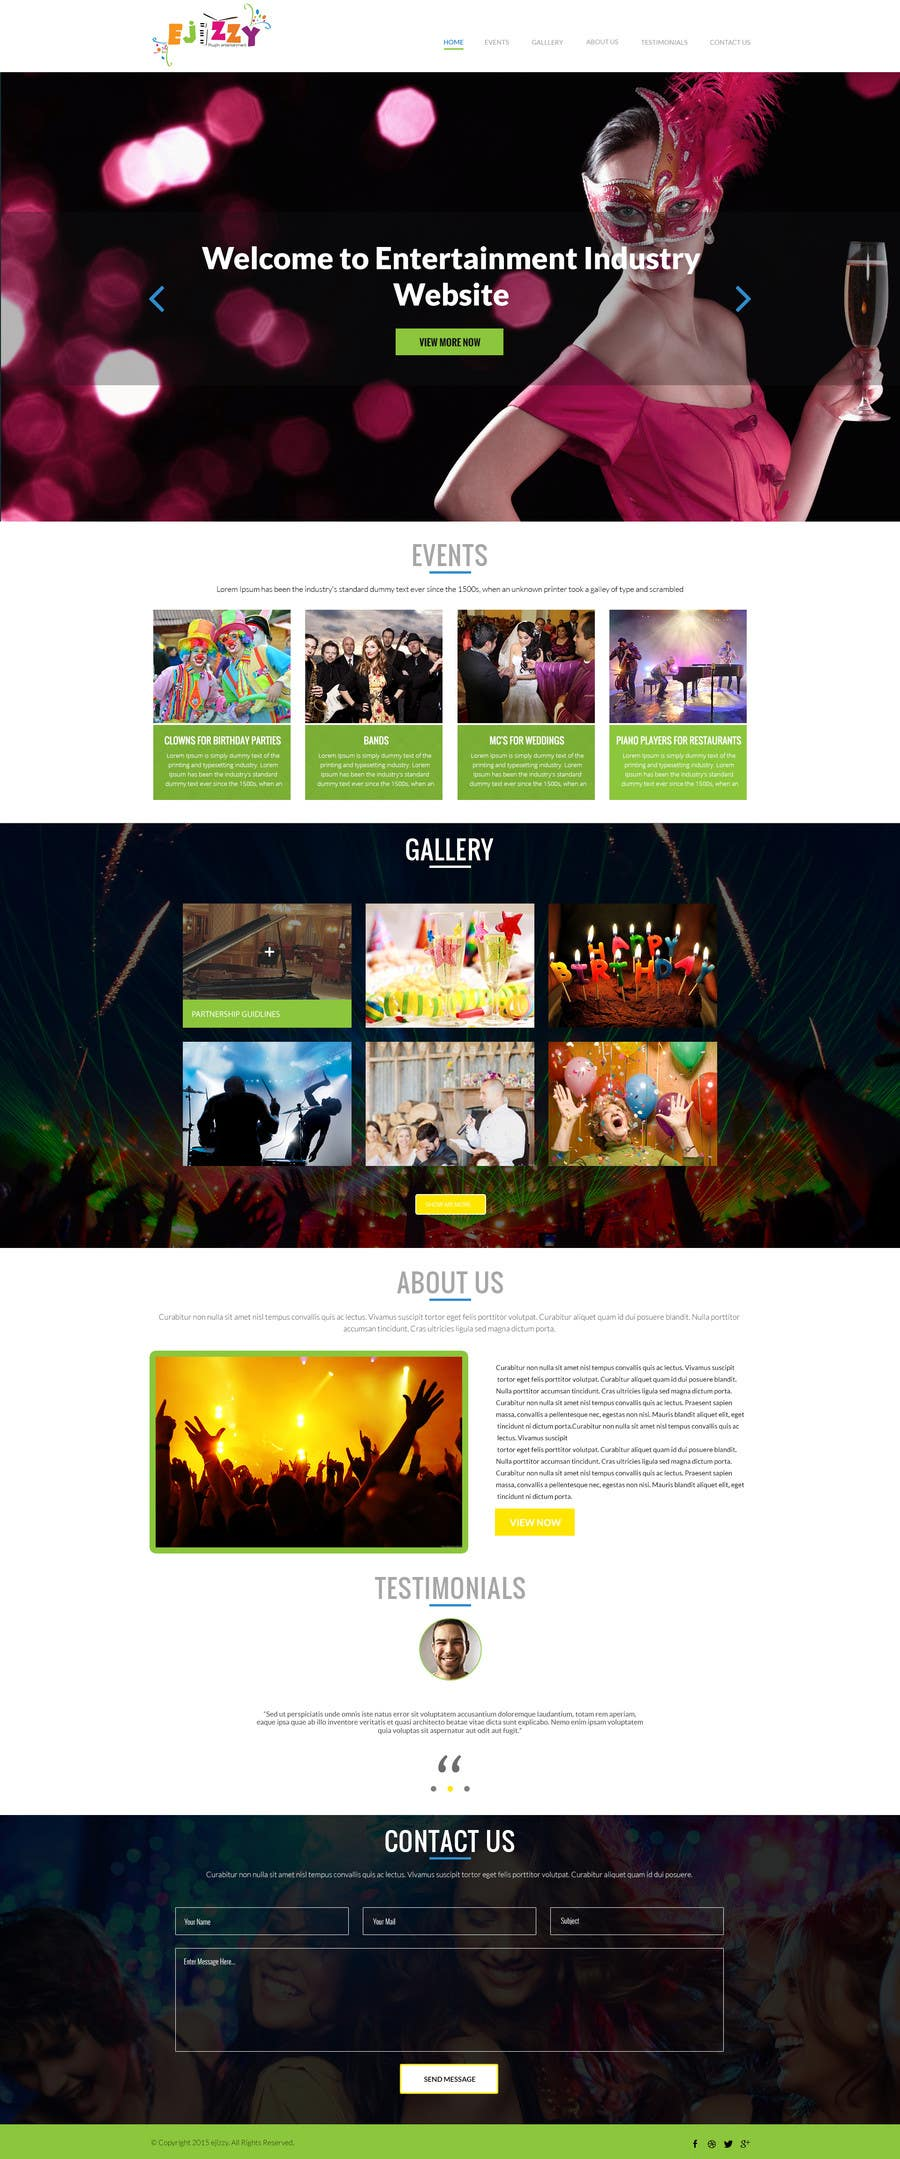 Contest Entry #                                        1                                      for                                         Design a Website Mockup for Entertainment Industry